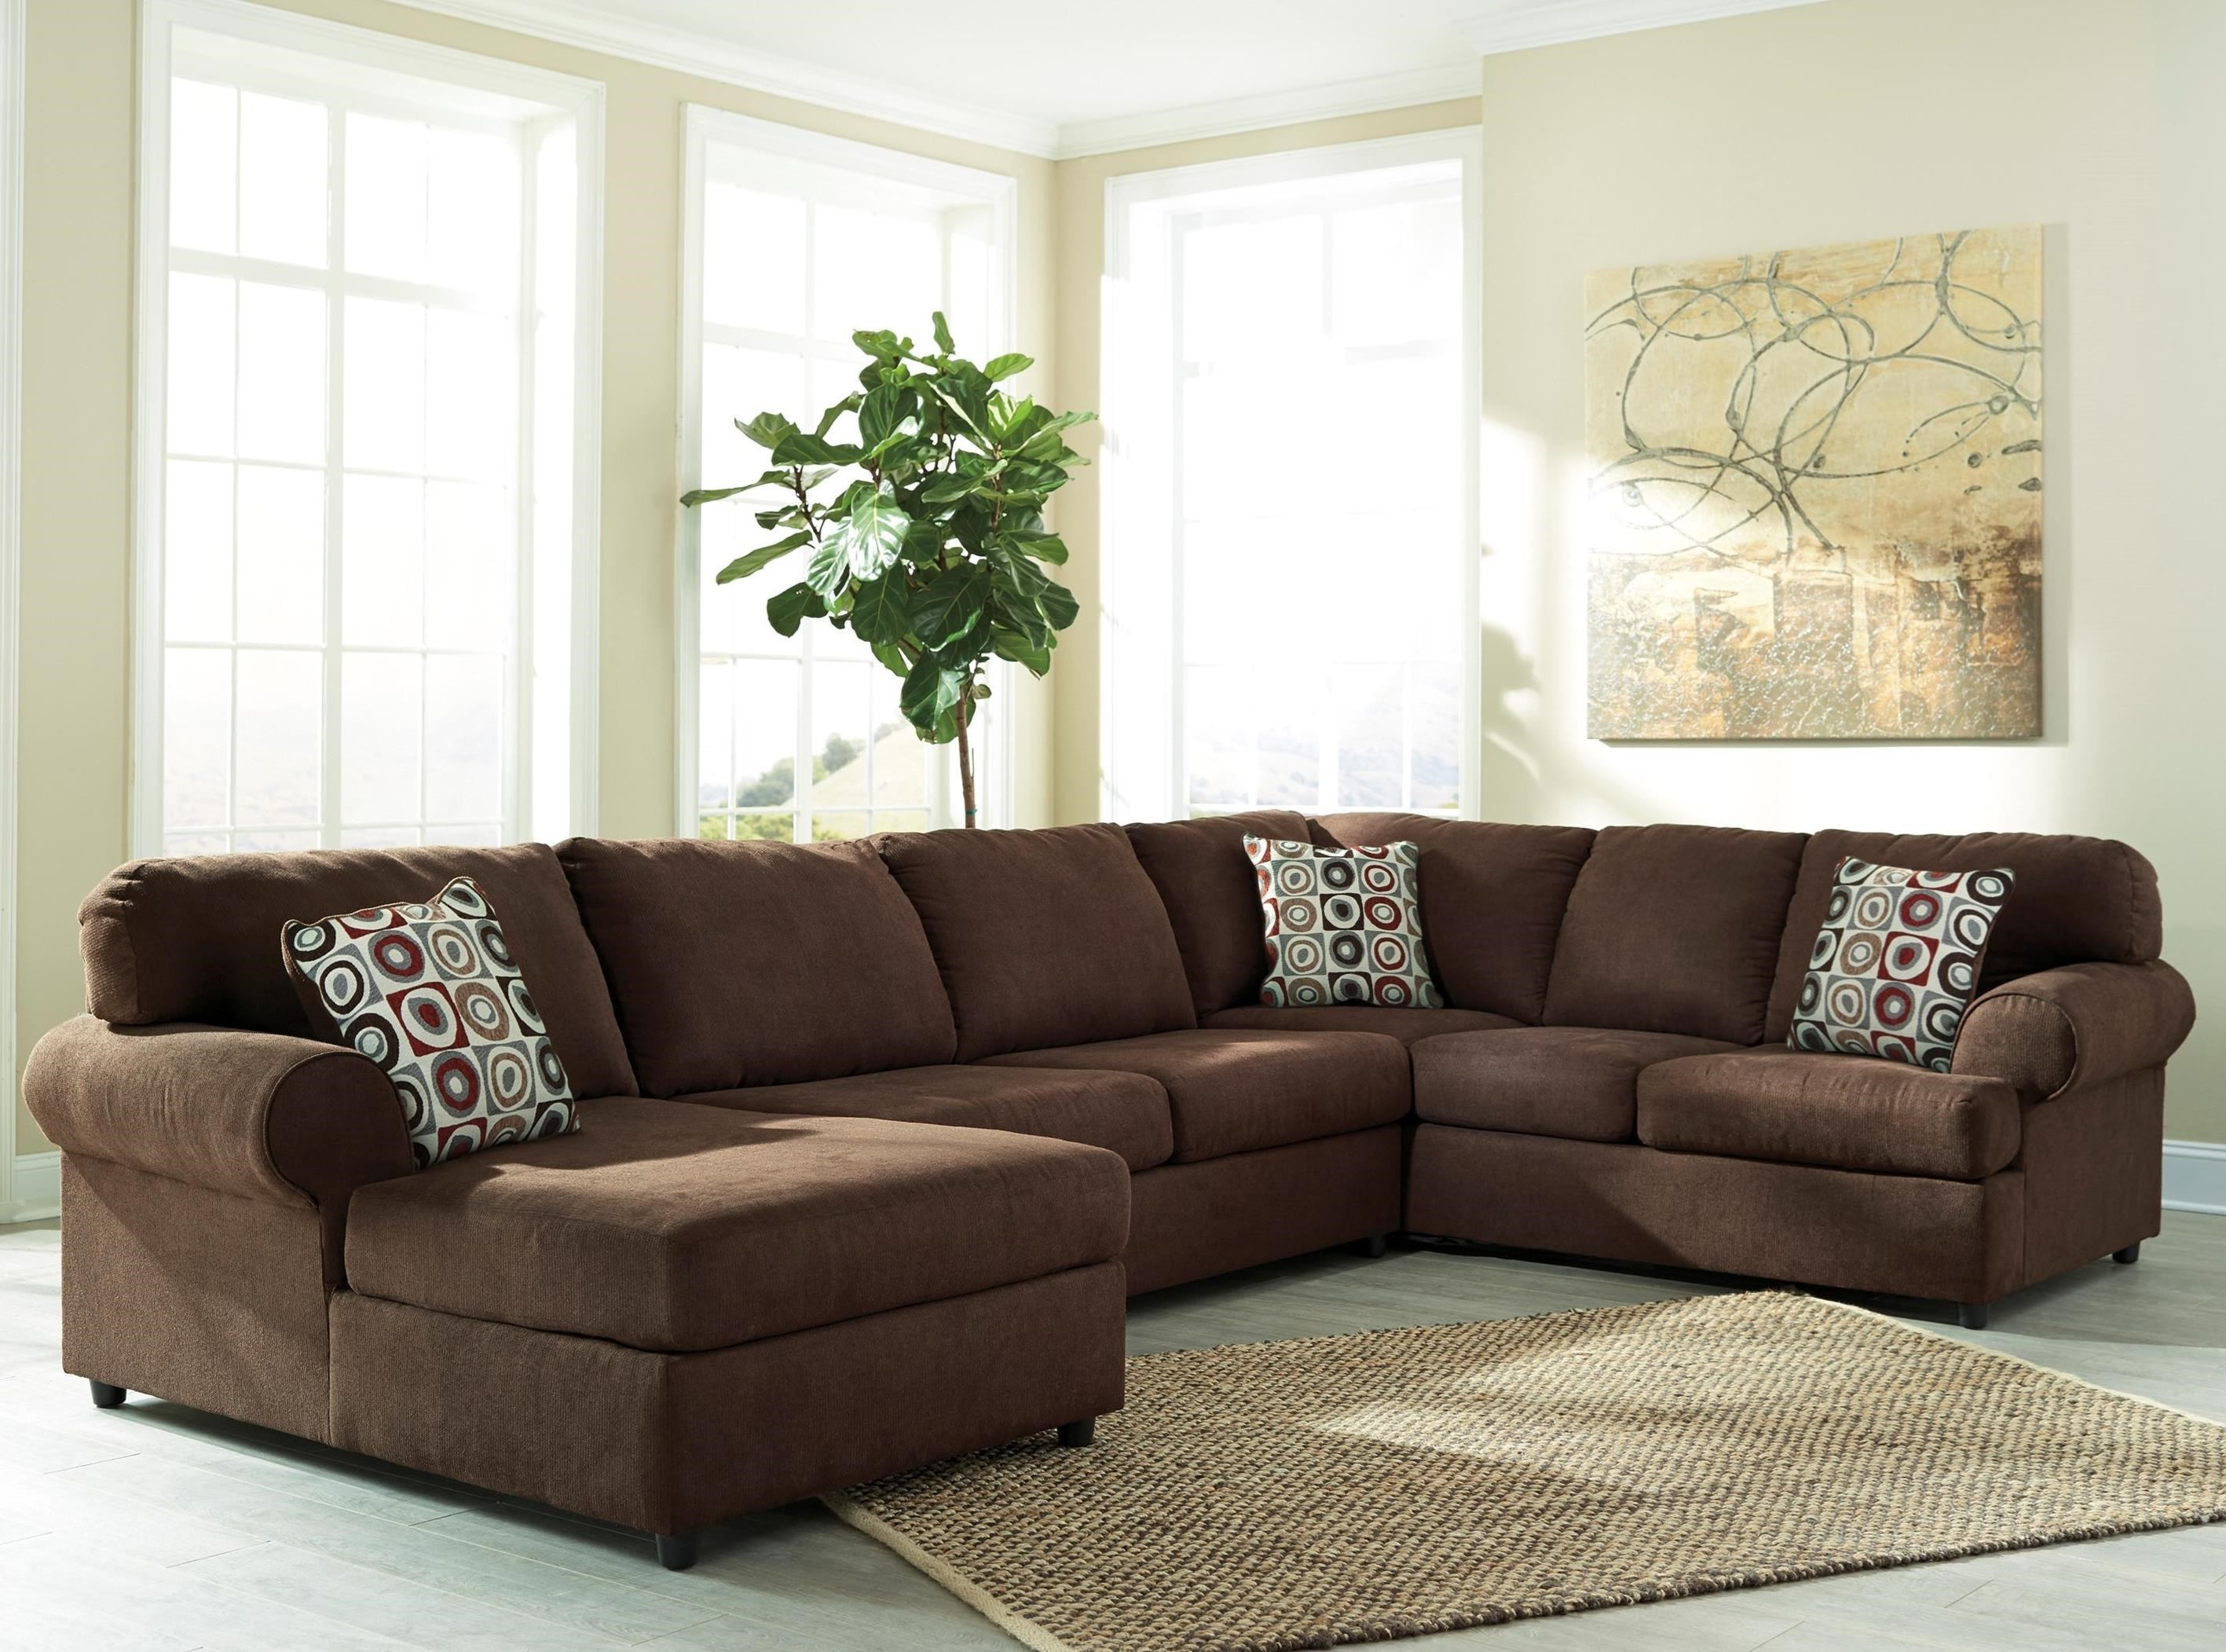 Signature Design By Ashley Jayceon 3 Piece Sectional With Left Chaise